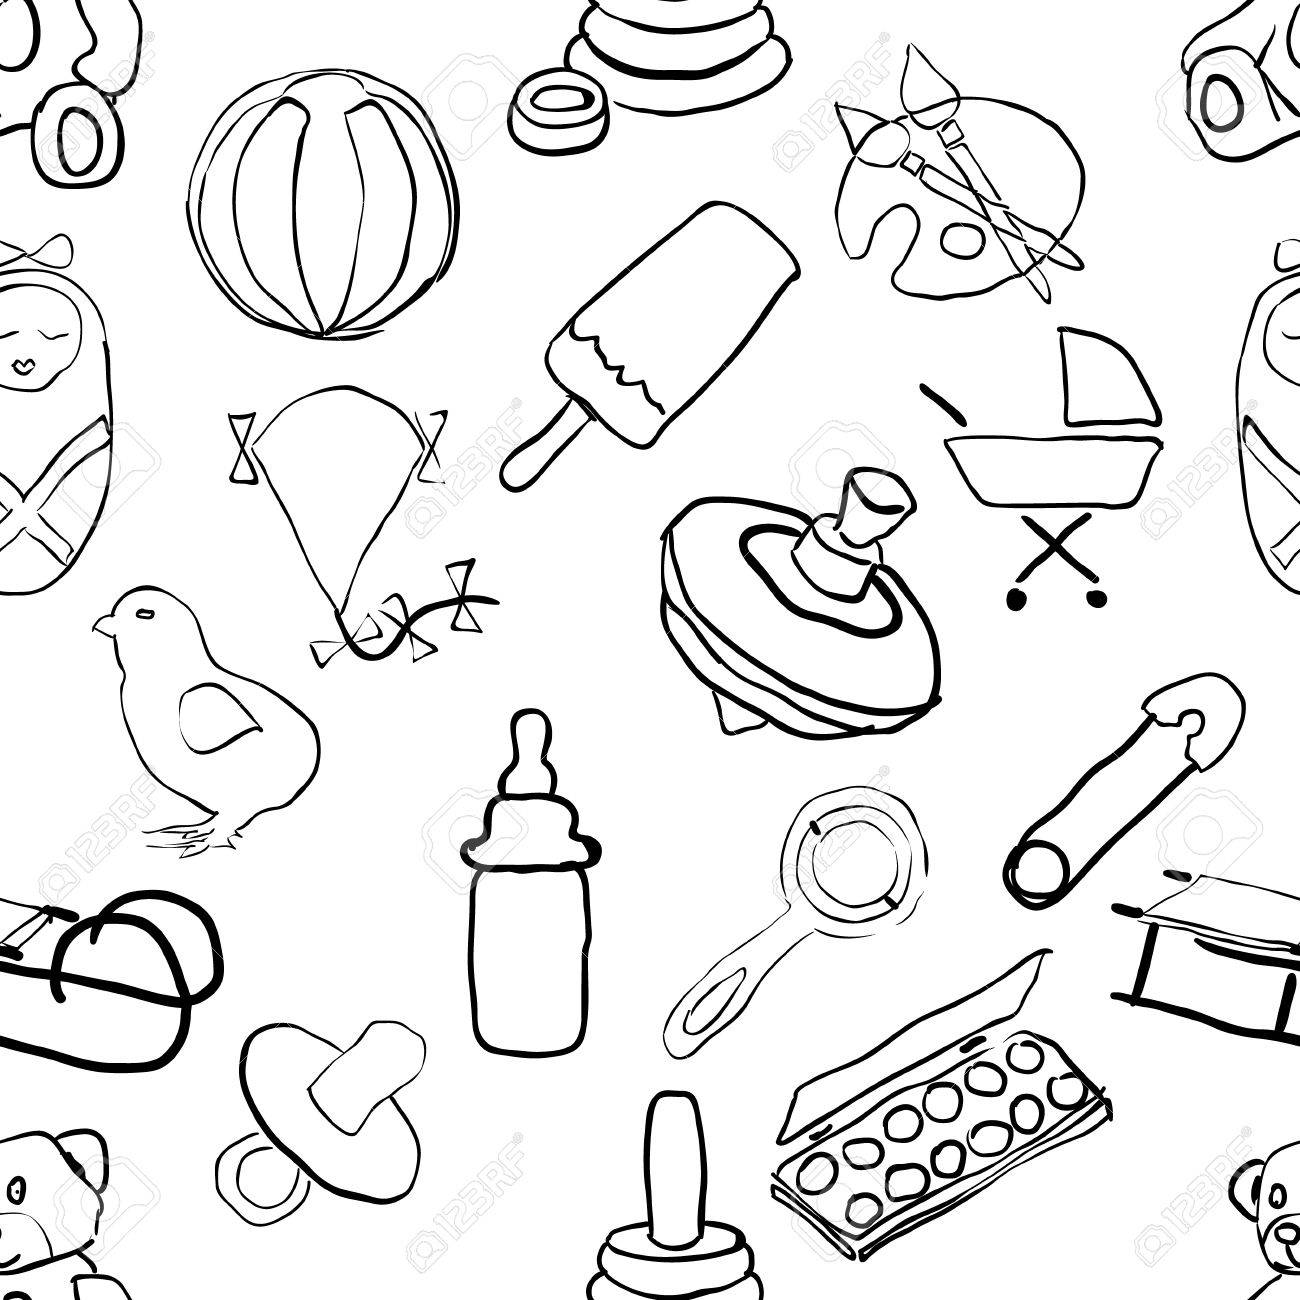 seamless doodle baby pattern - 15350725